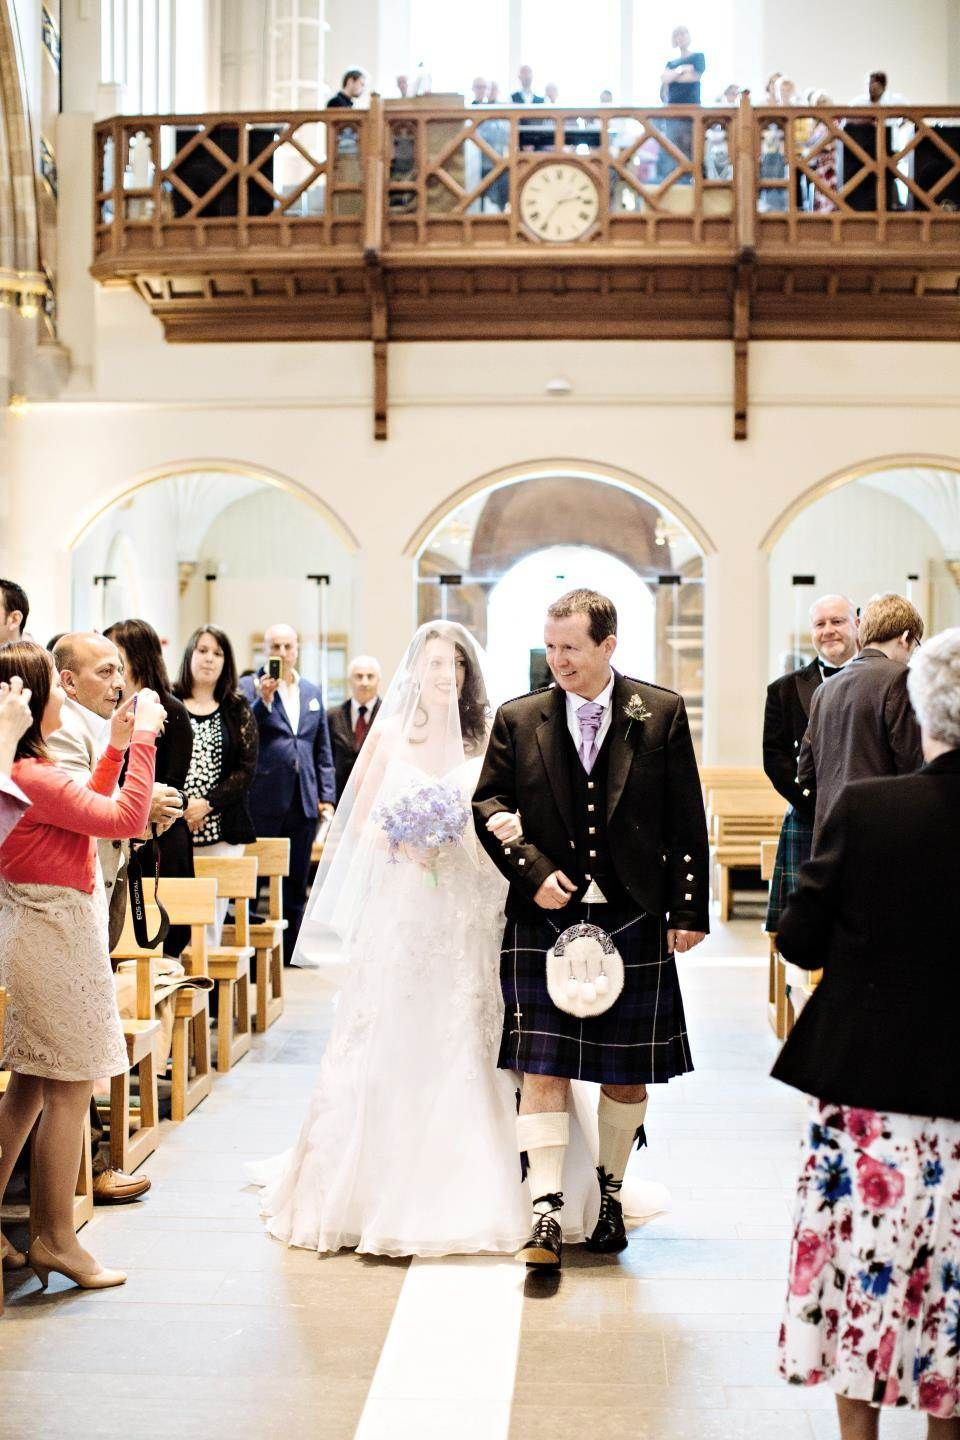 Real bride emily june scenest andrewus cathedral glasgow